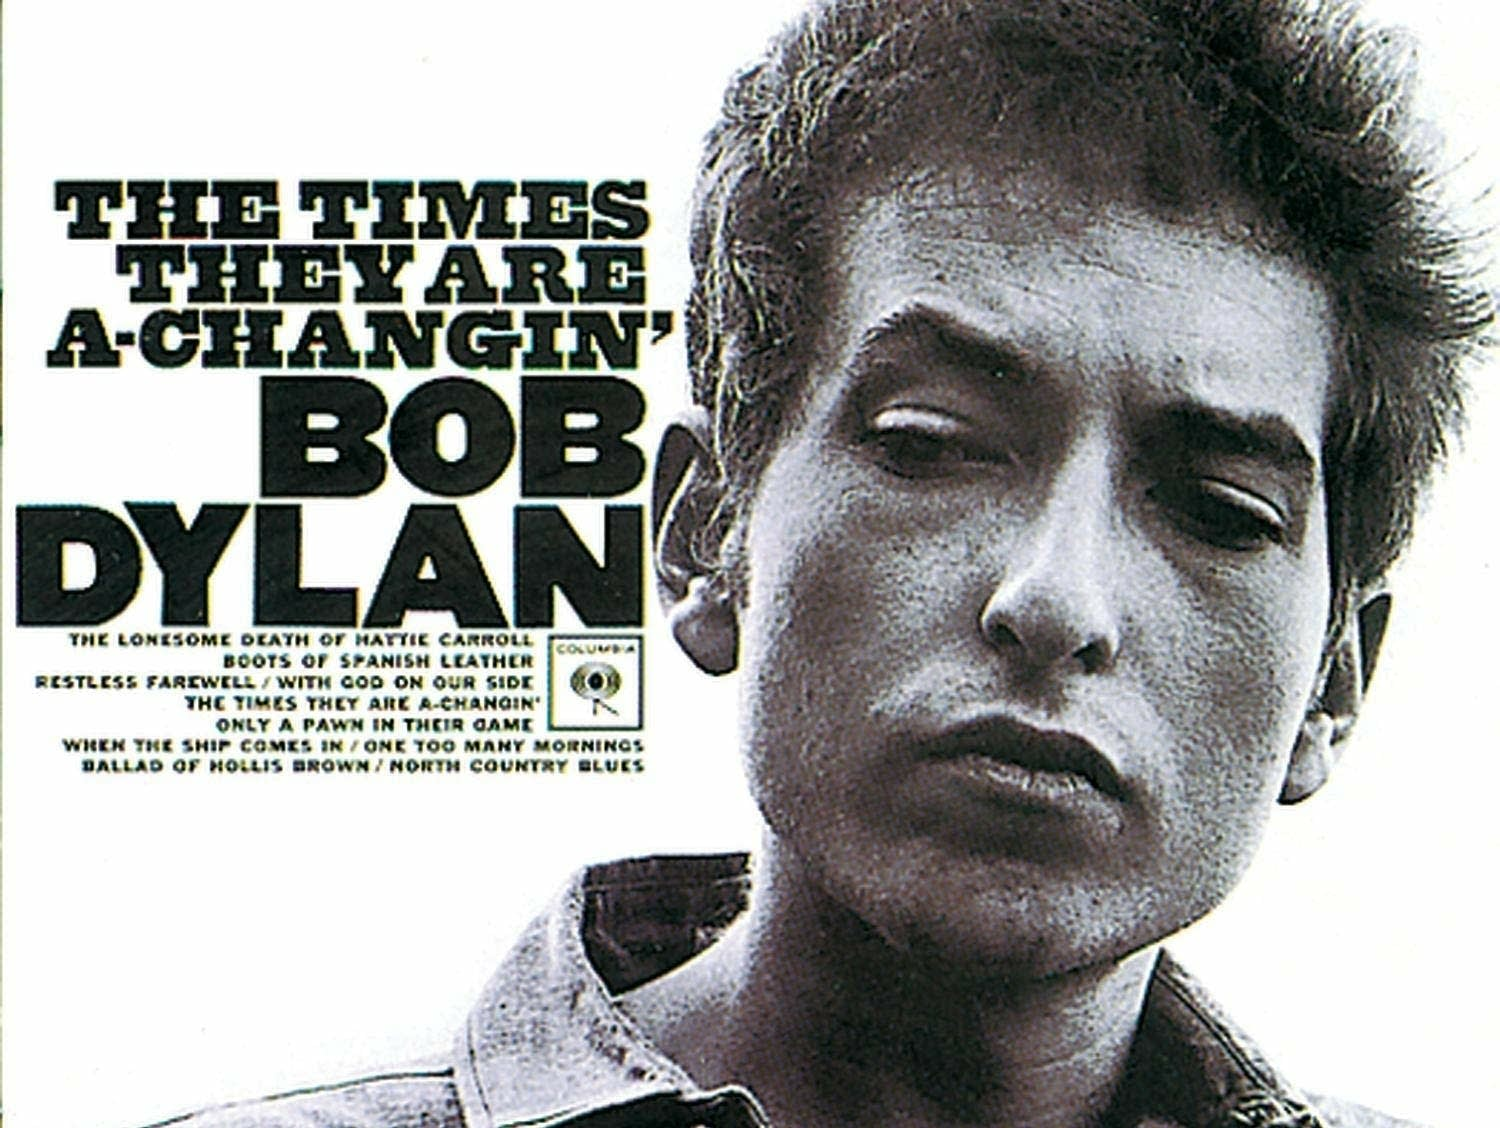 Bob Dylan 'Times They Are A-Changin'' album cover.